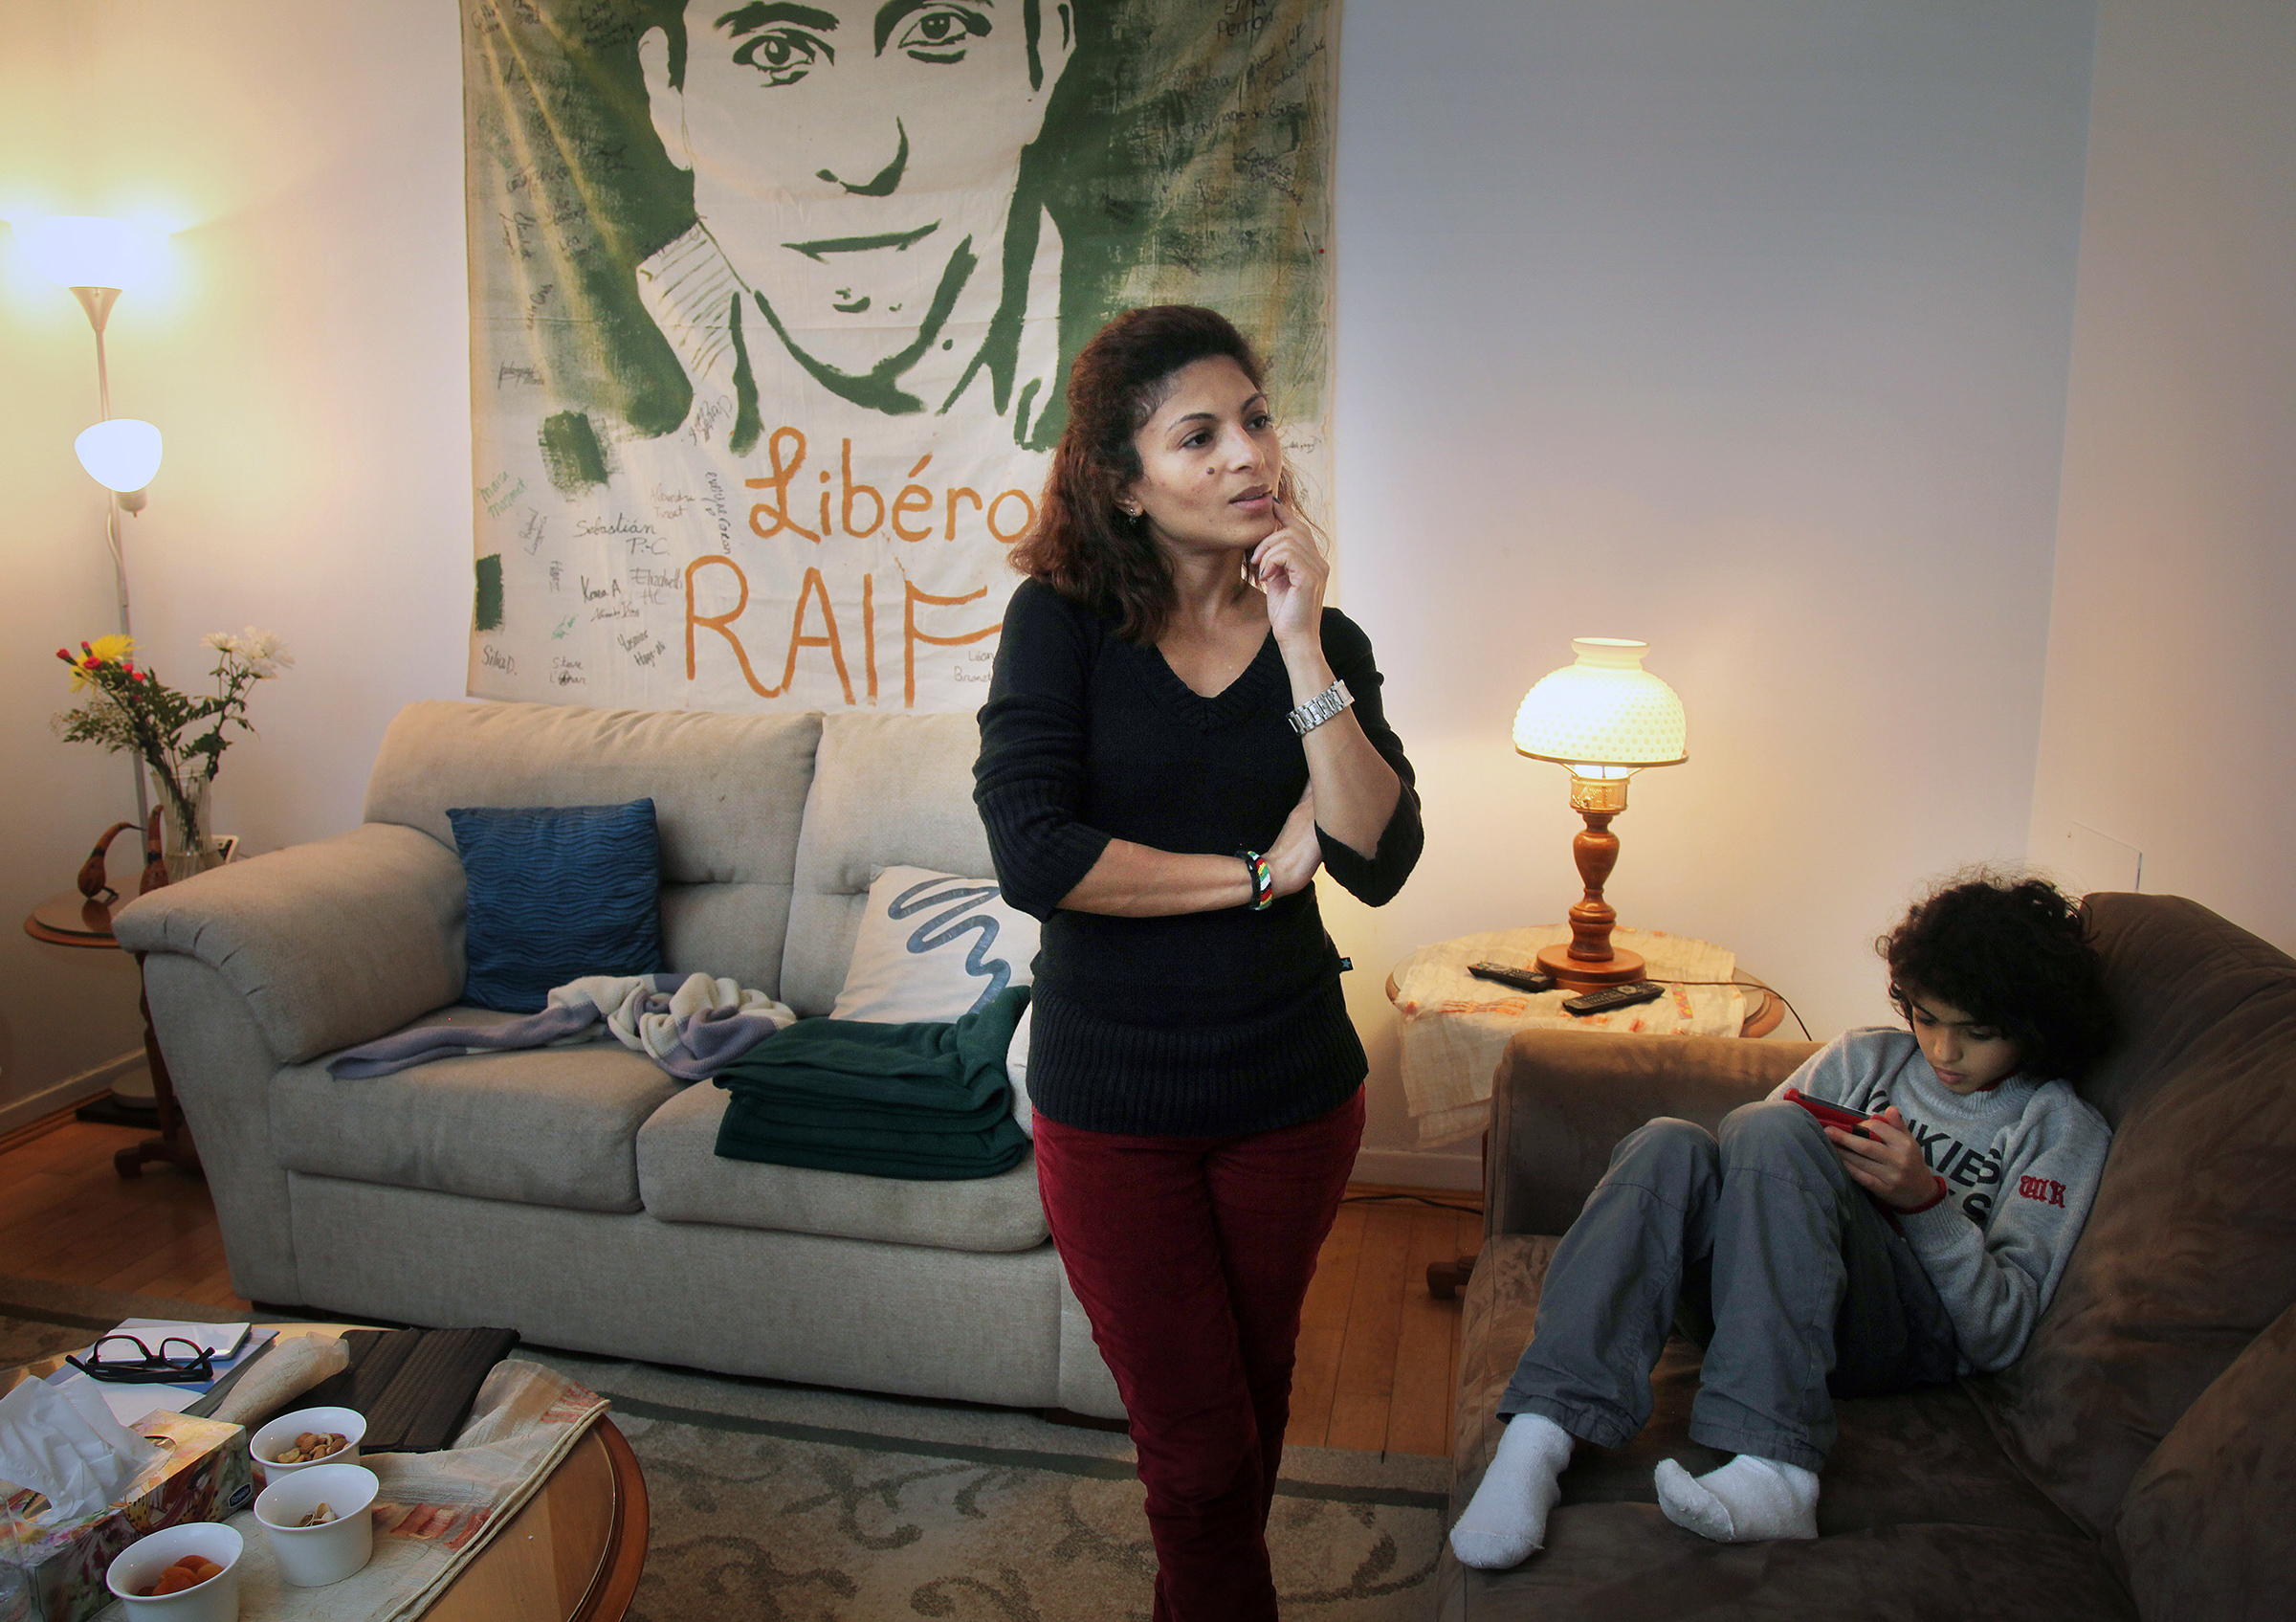 Ensaf Haidar in her home in a small basement apartment in the city of Sherbrooke, Quebec on Jan 19, 2015. She has continued to advocate for her husband's release with the help of Amnesty International. She has been accepted into Canada as a refugee.